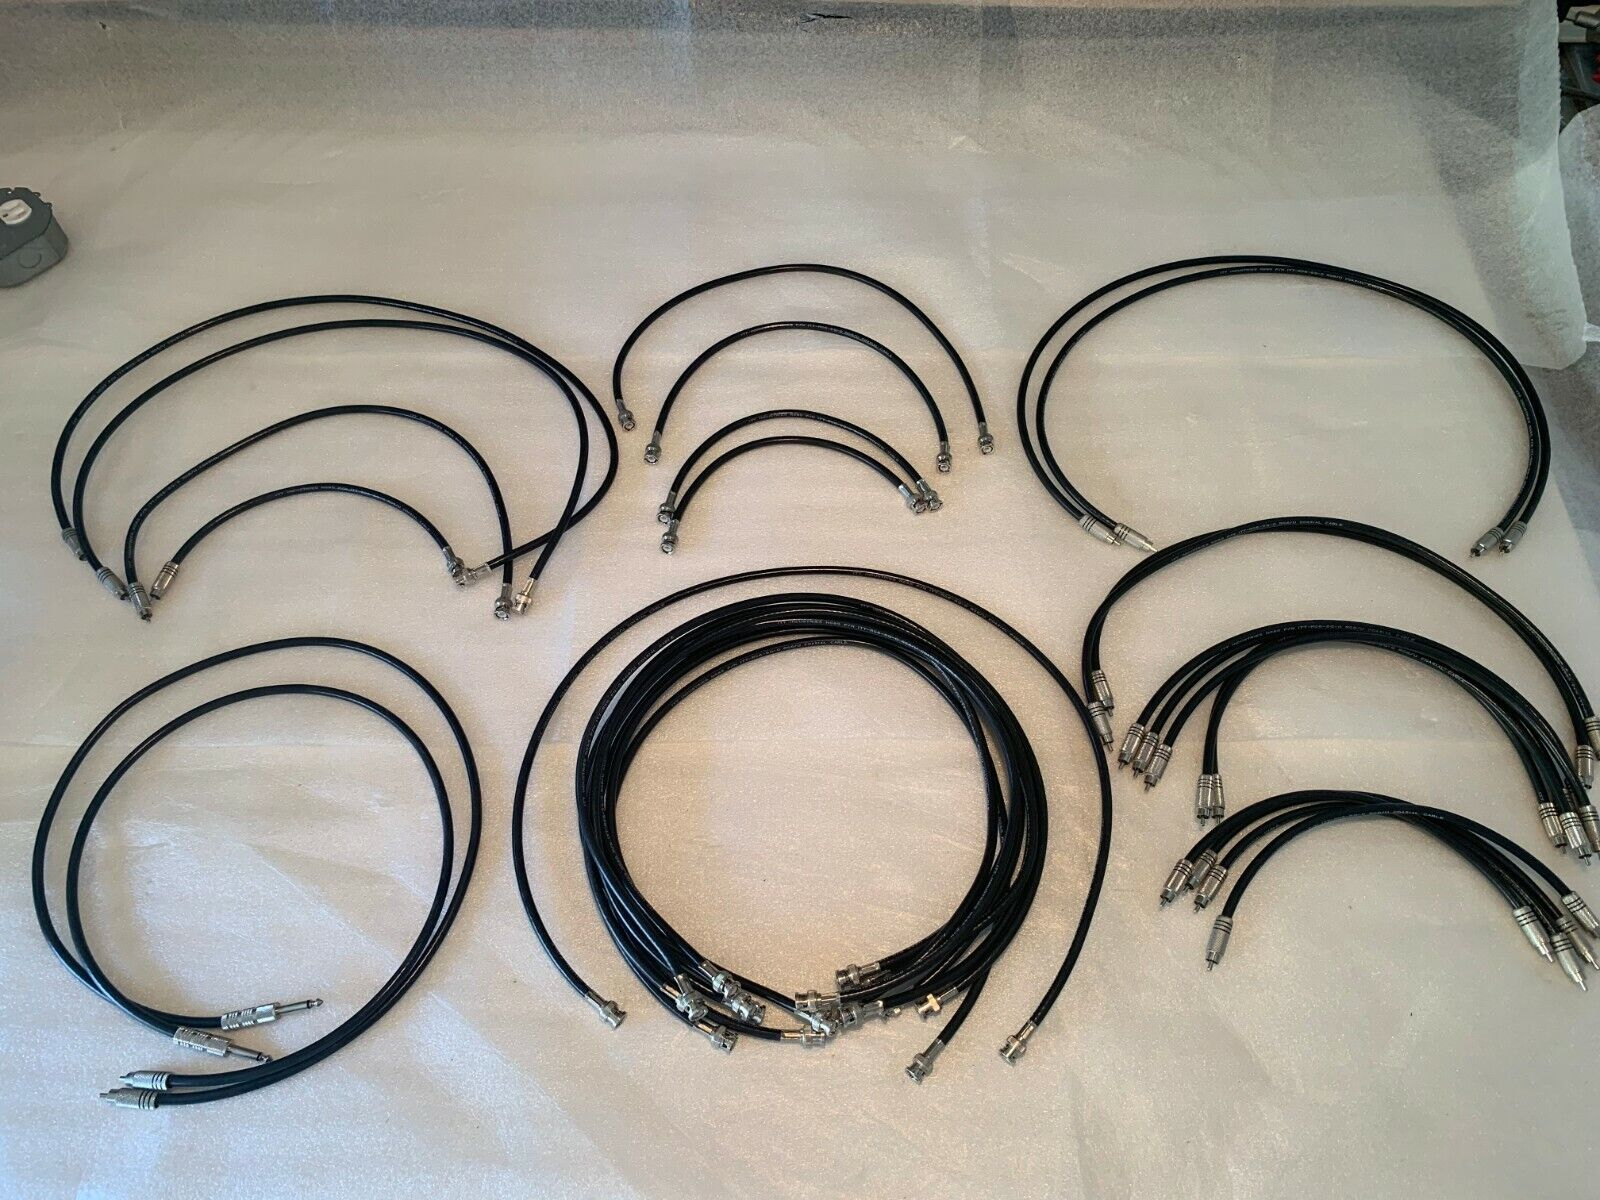 """Assorted audio and video BNC, RCA, and 1/4"""" cables"""